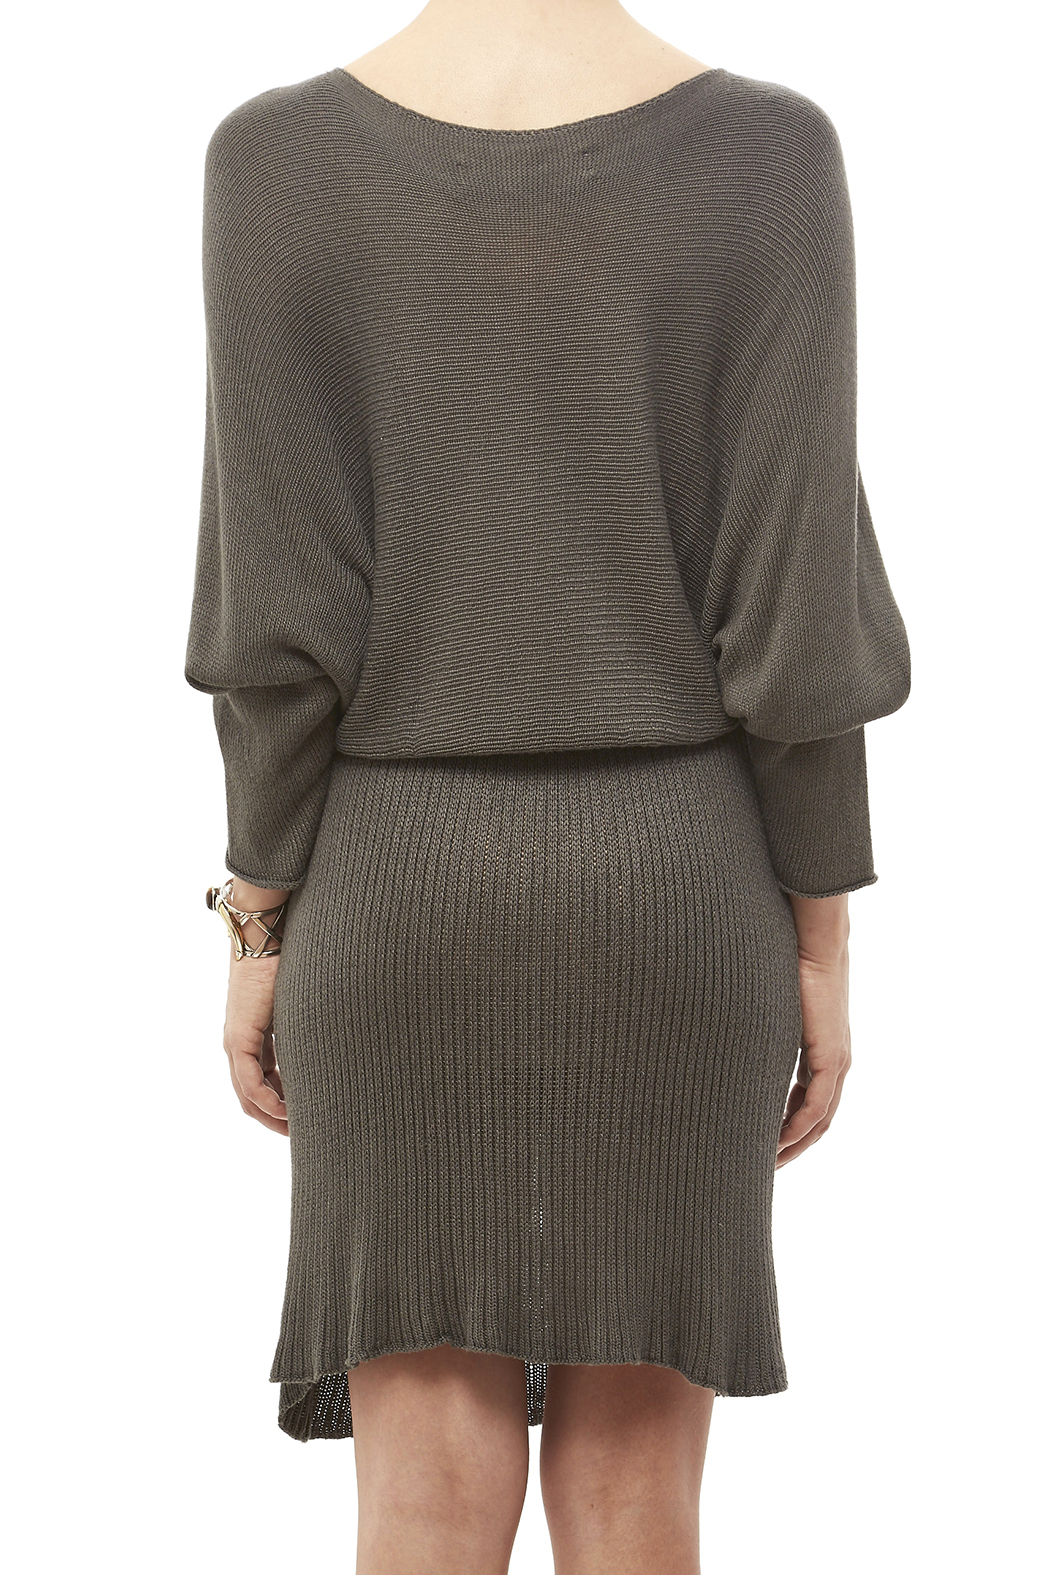 DC KNITS Bamboo Ashe Dress - Back Cropped Image